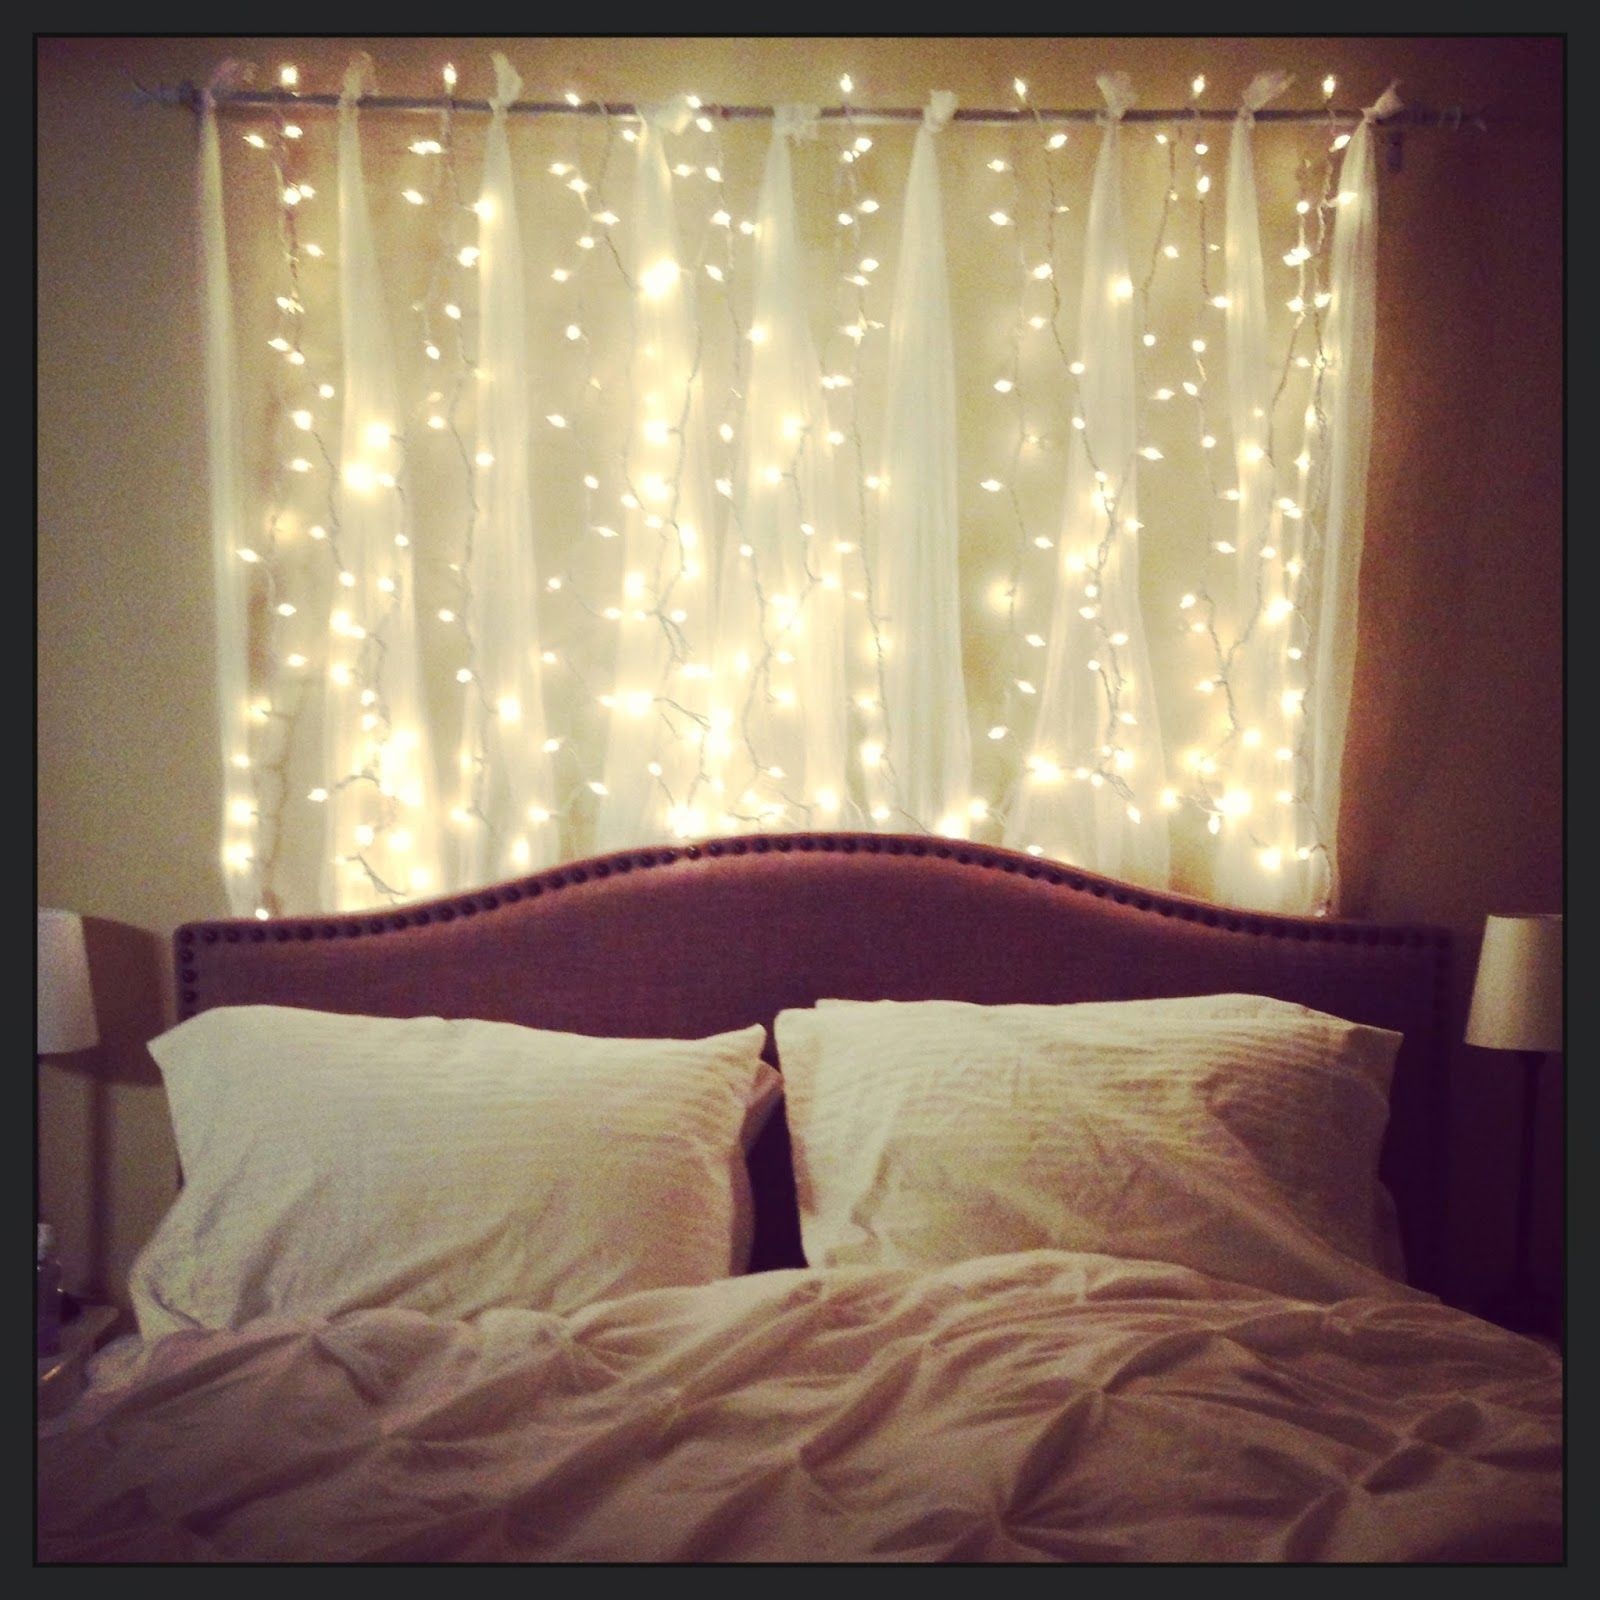 Canopy bed curtains with lights - Home Decorating News Decorating Ideas With Tulle Wall Drapes String Lights For Bedroomstring